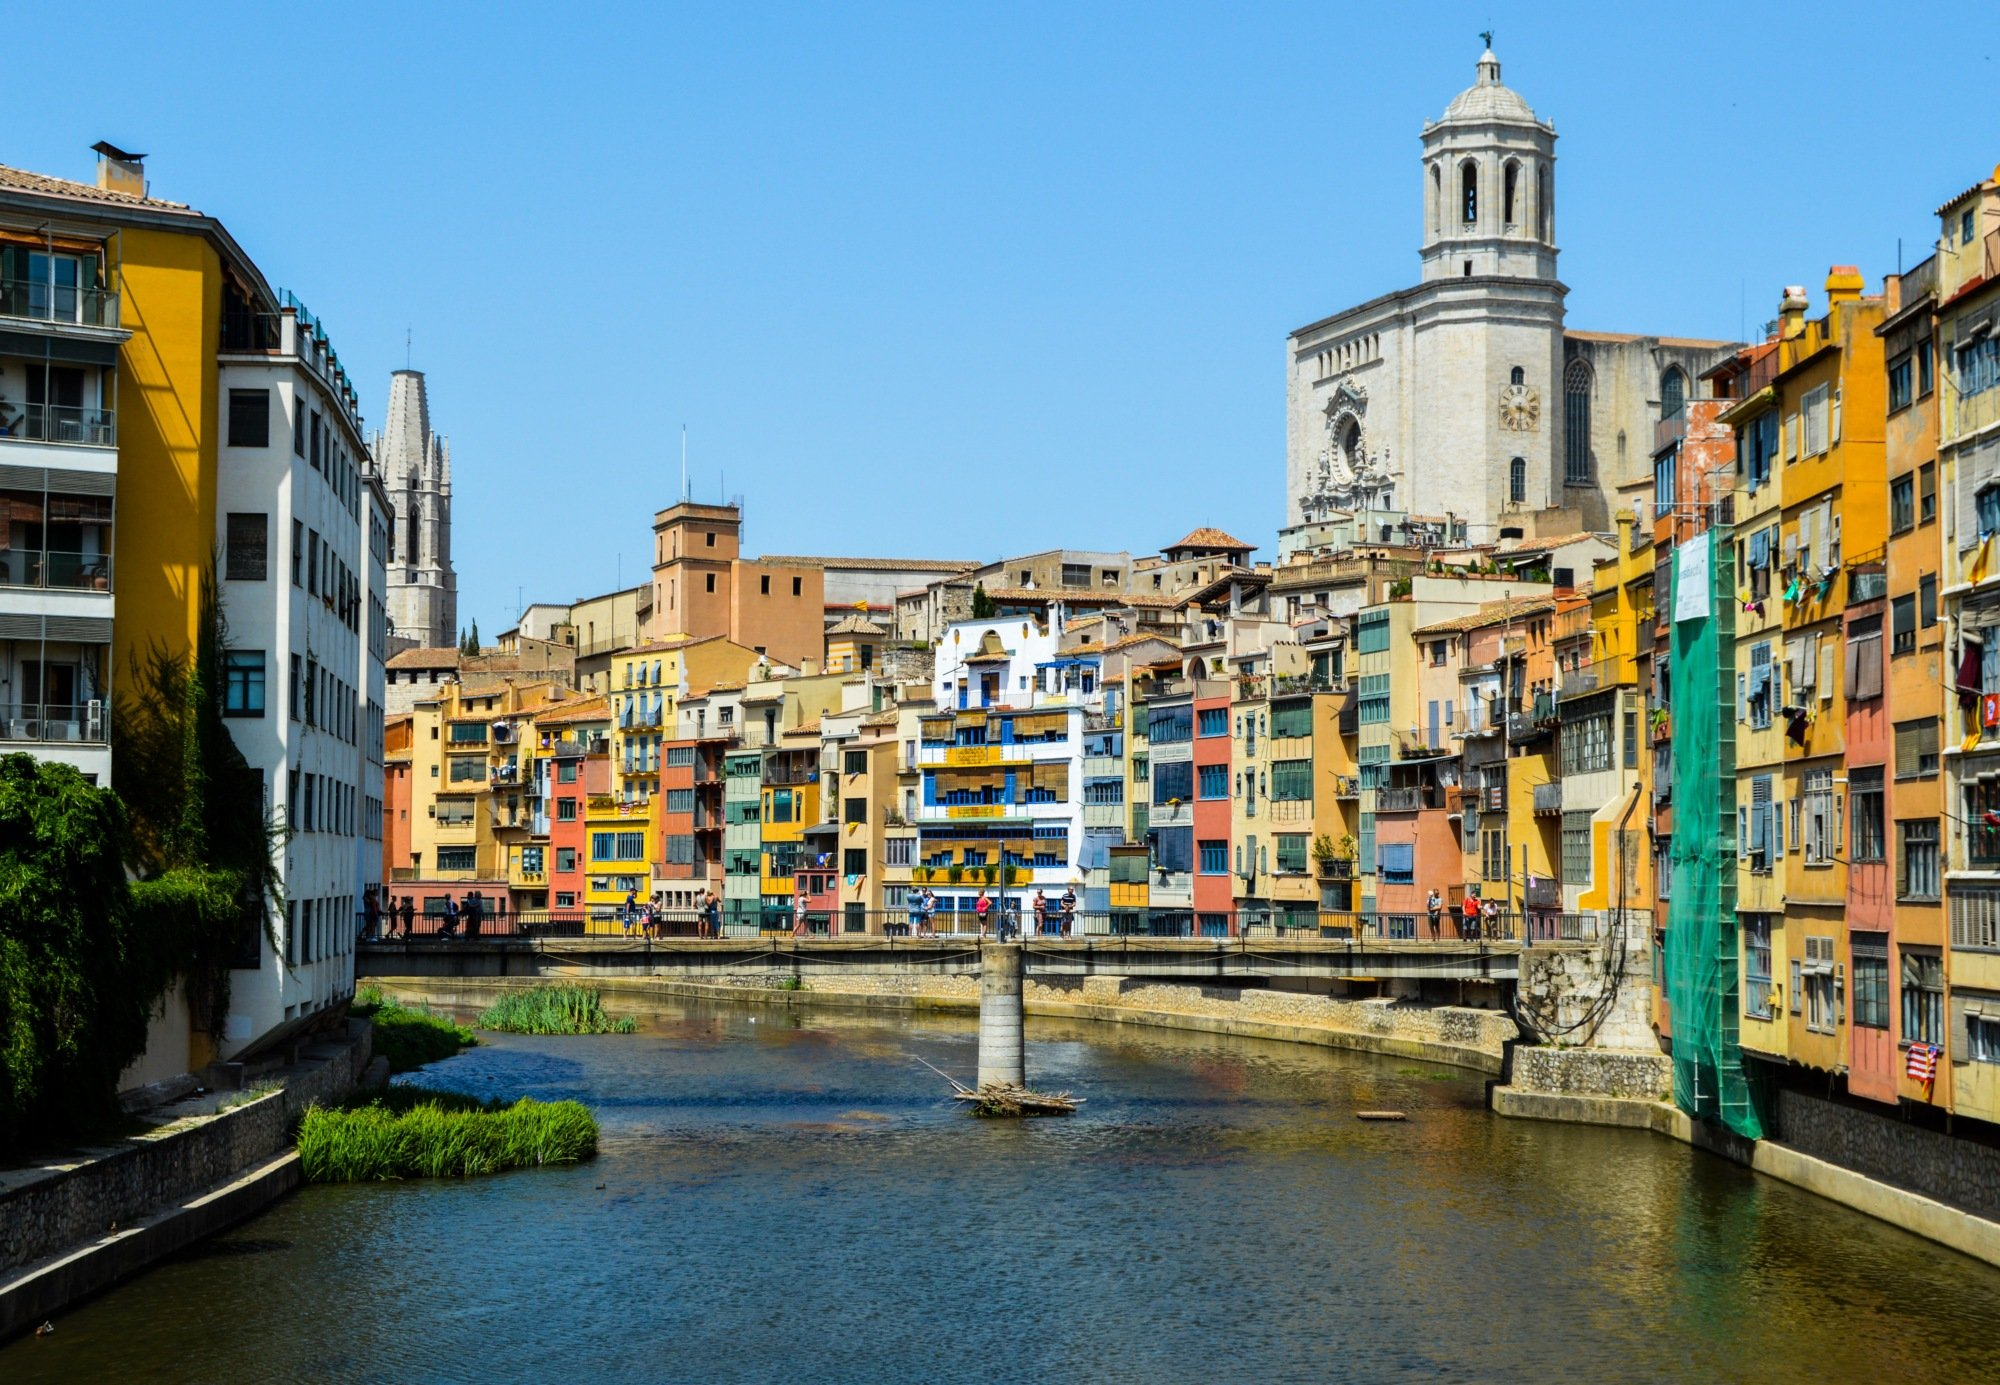 Our favourite cycling holiday destination, number 1 - Girona